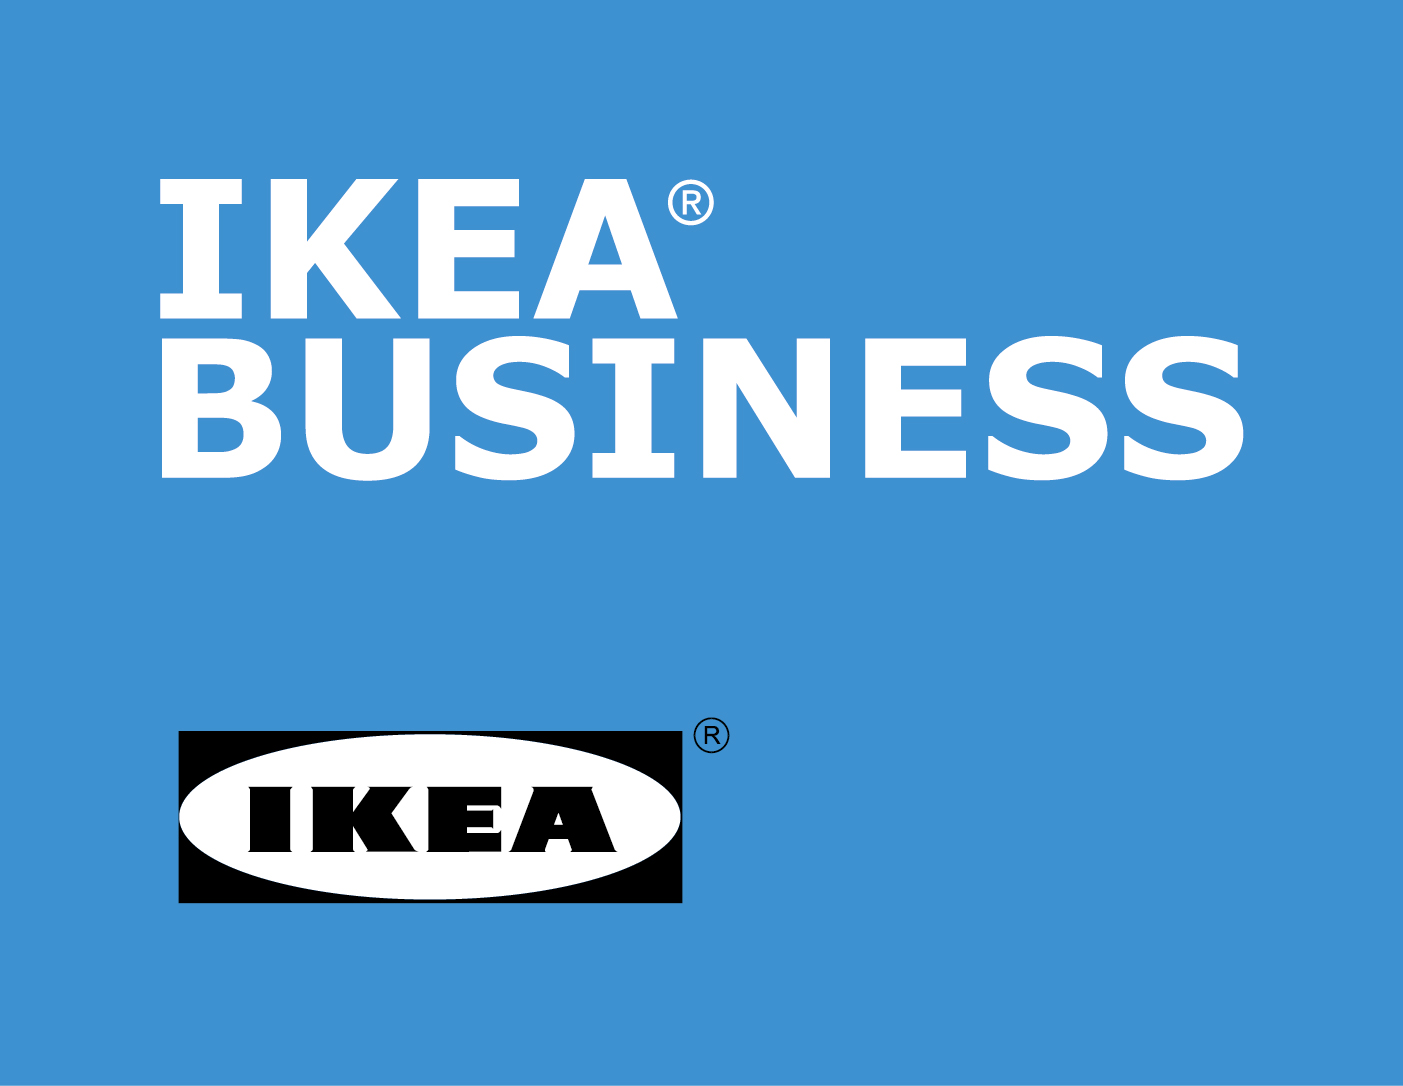 ikea business